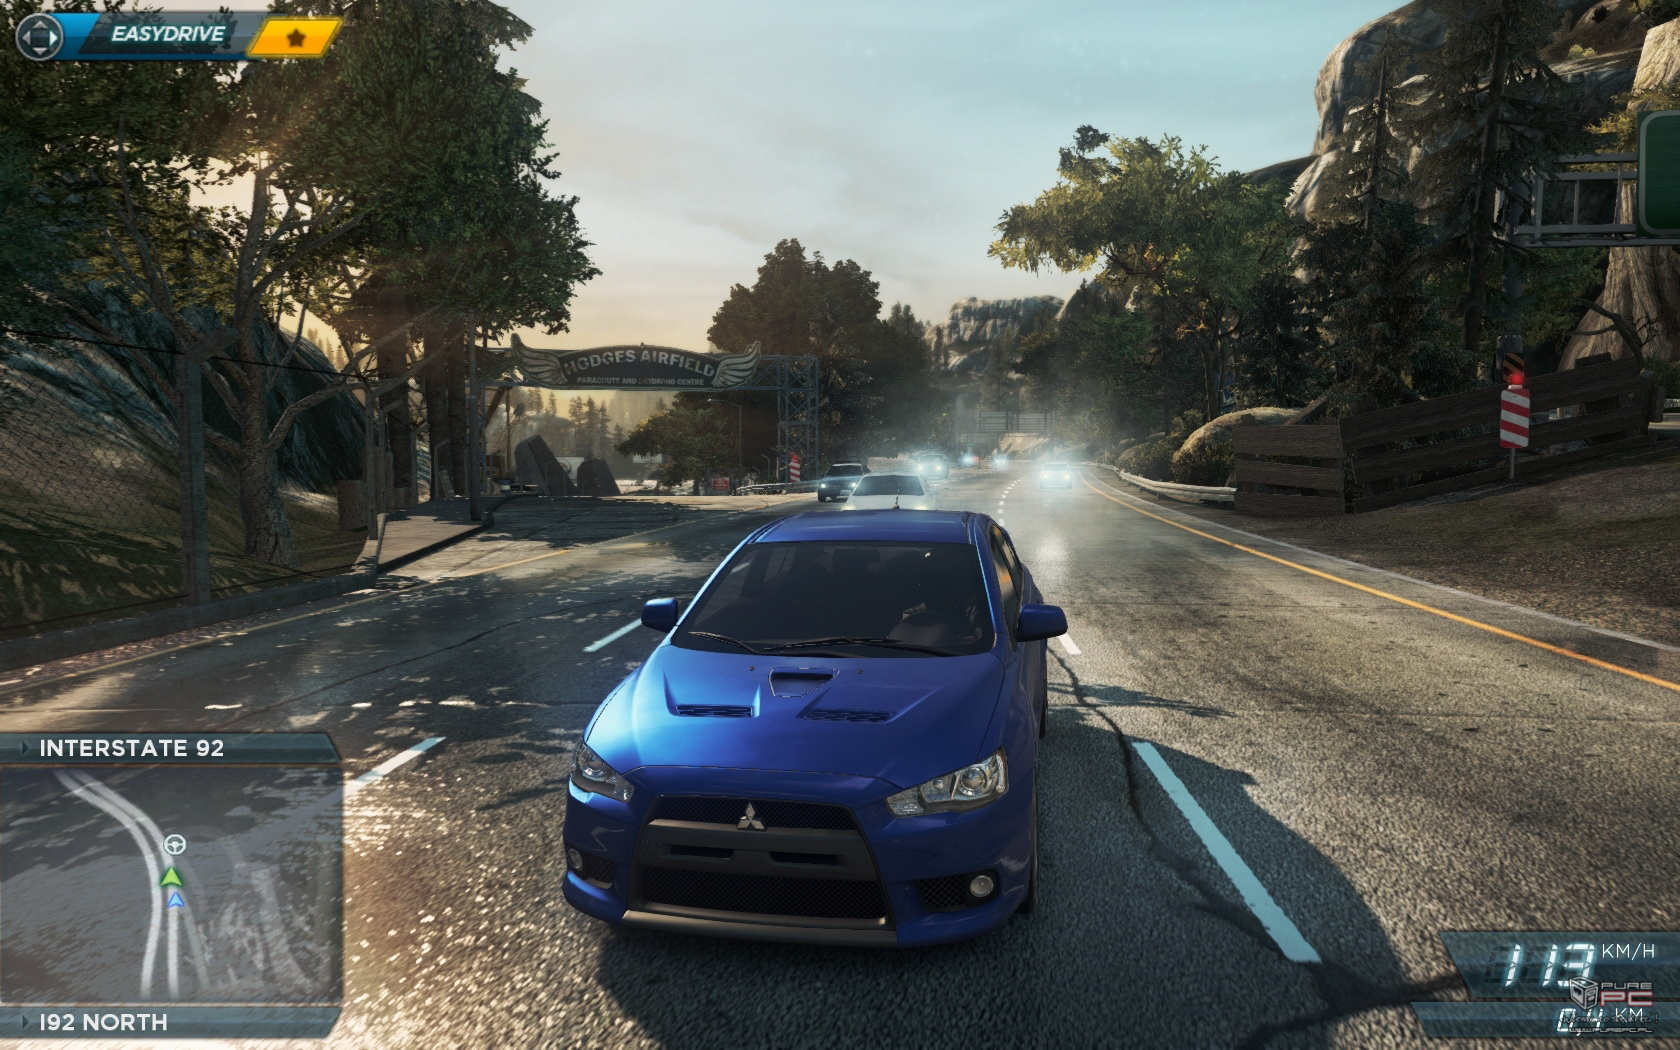 nfs_most_wanted_screen_review_test_8.jpg